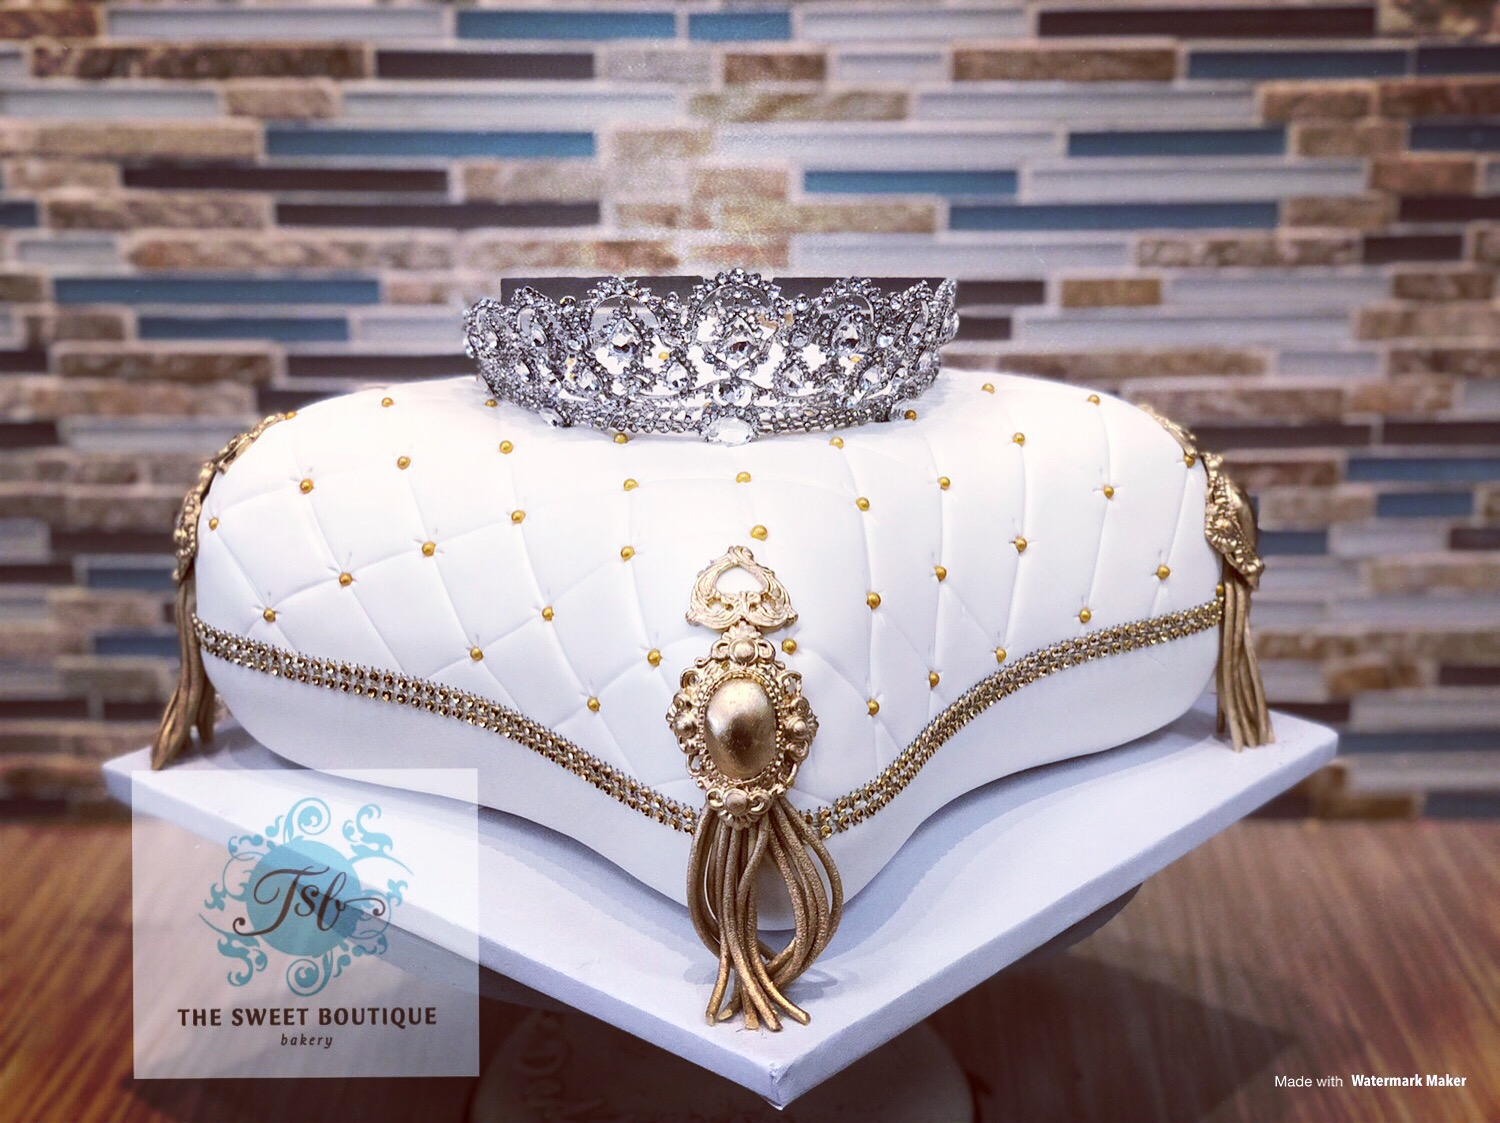 3D Sculpted Pillow Cake with Tiara